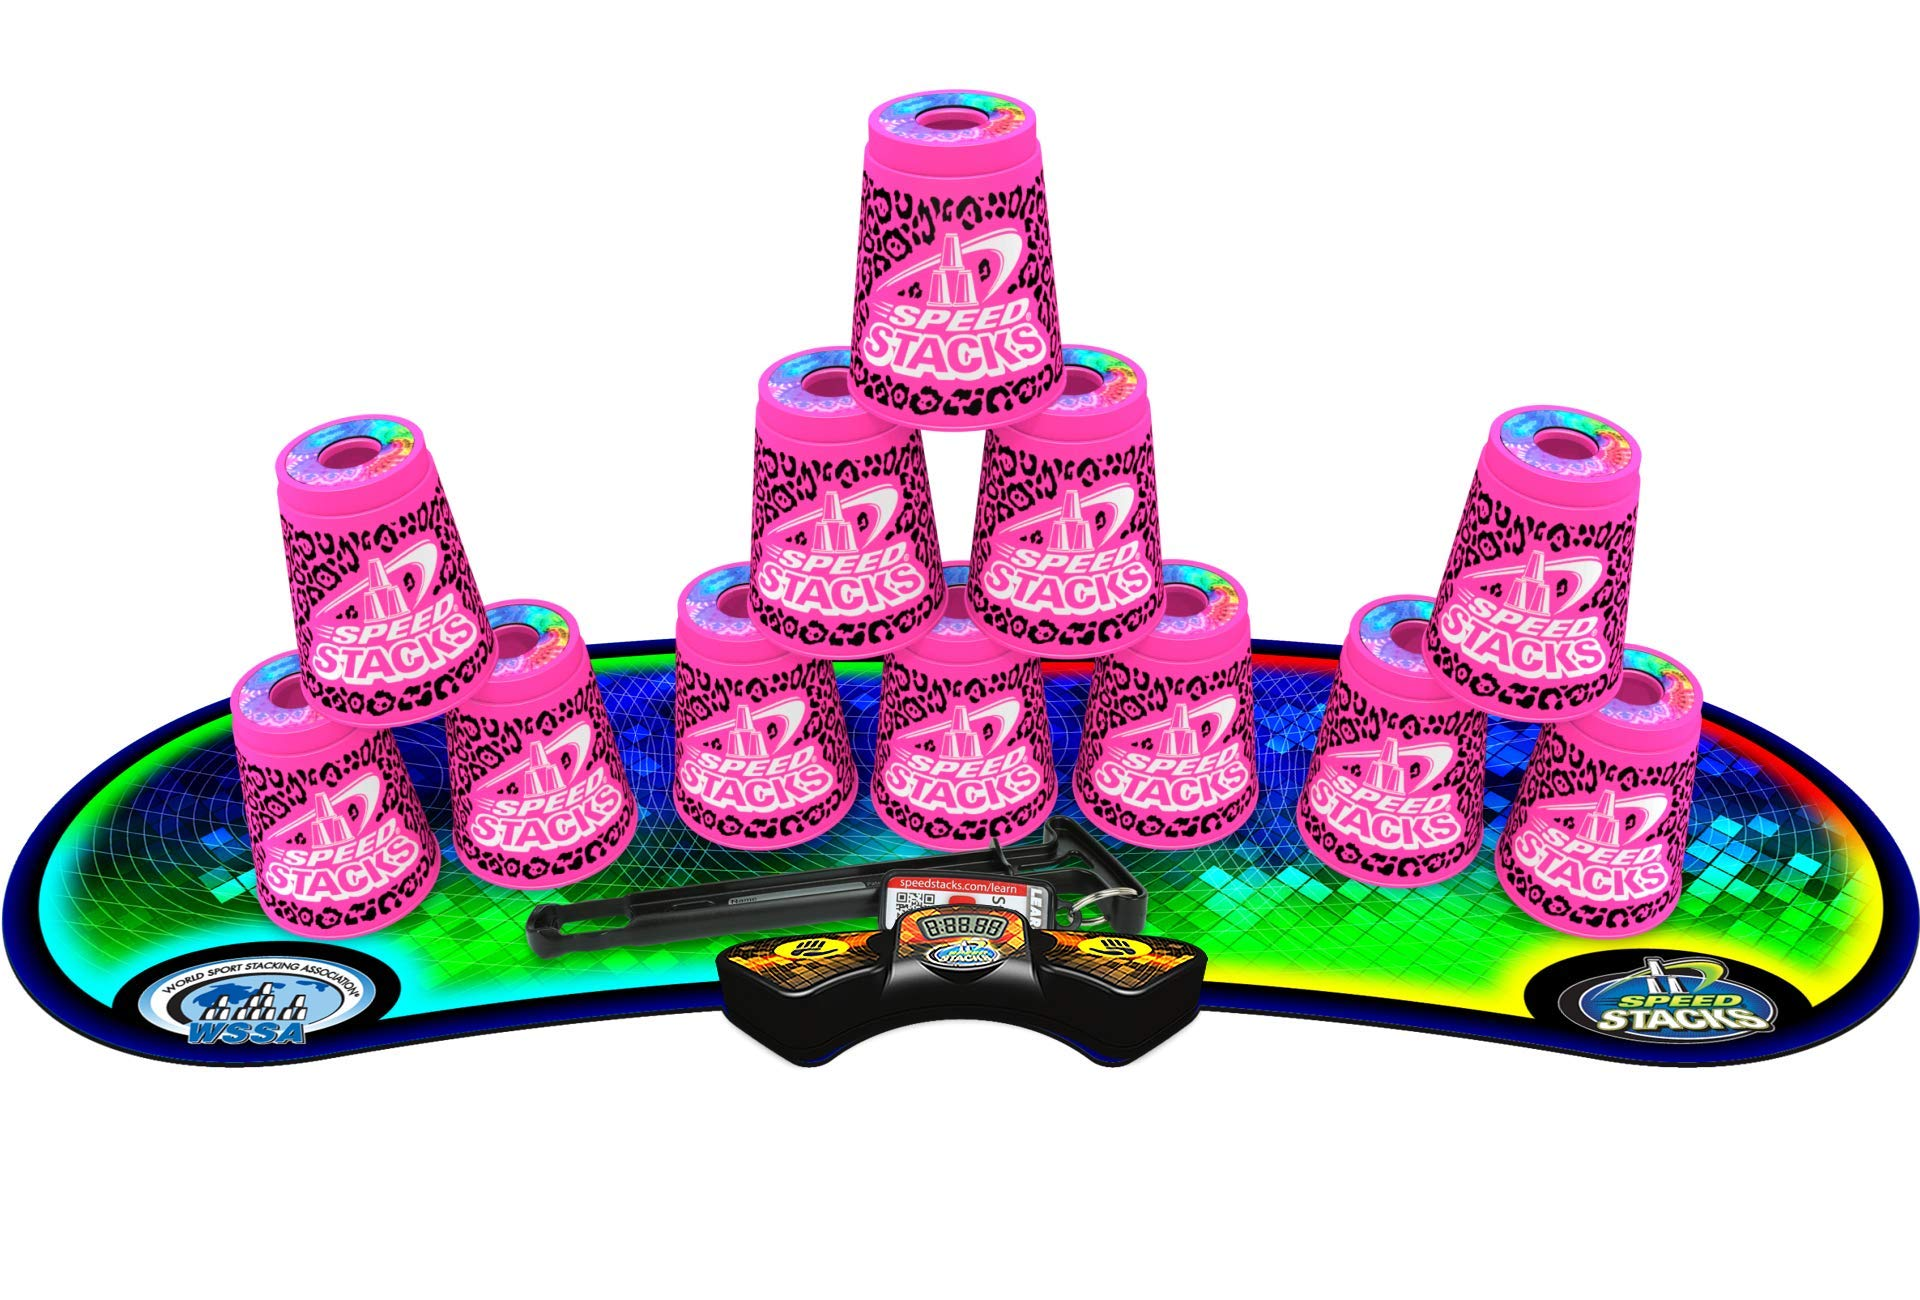 Speed Stacks Competitor - Zippy Leopard w/ Voxel Glow Mat by Speed Stacks